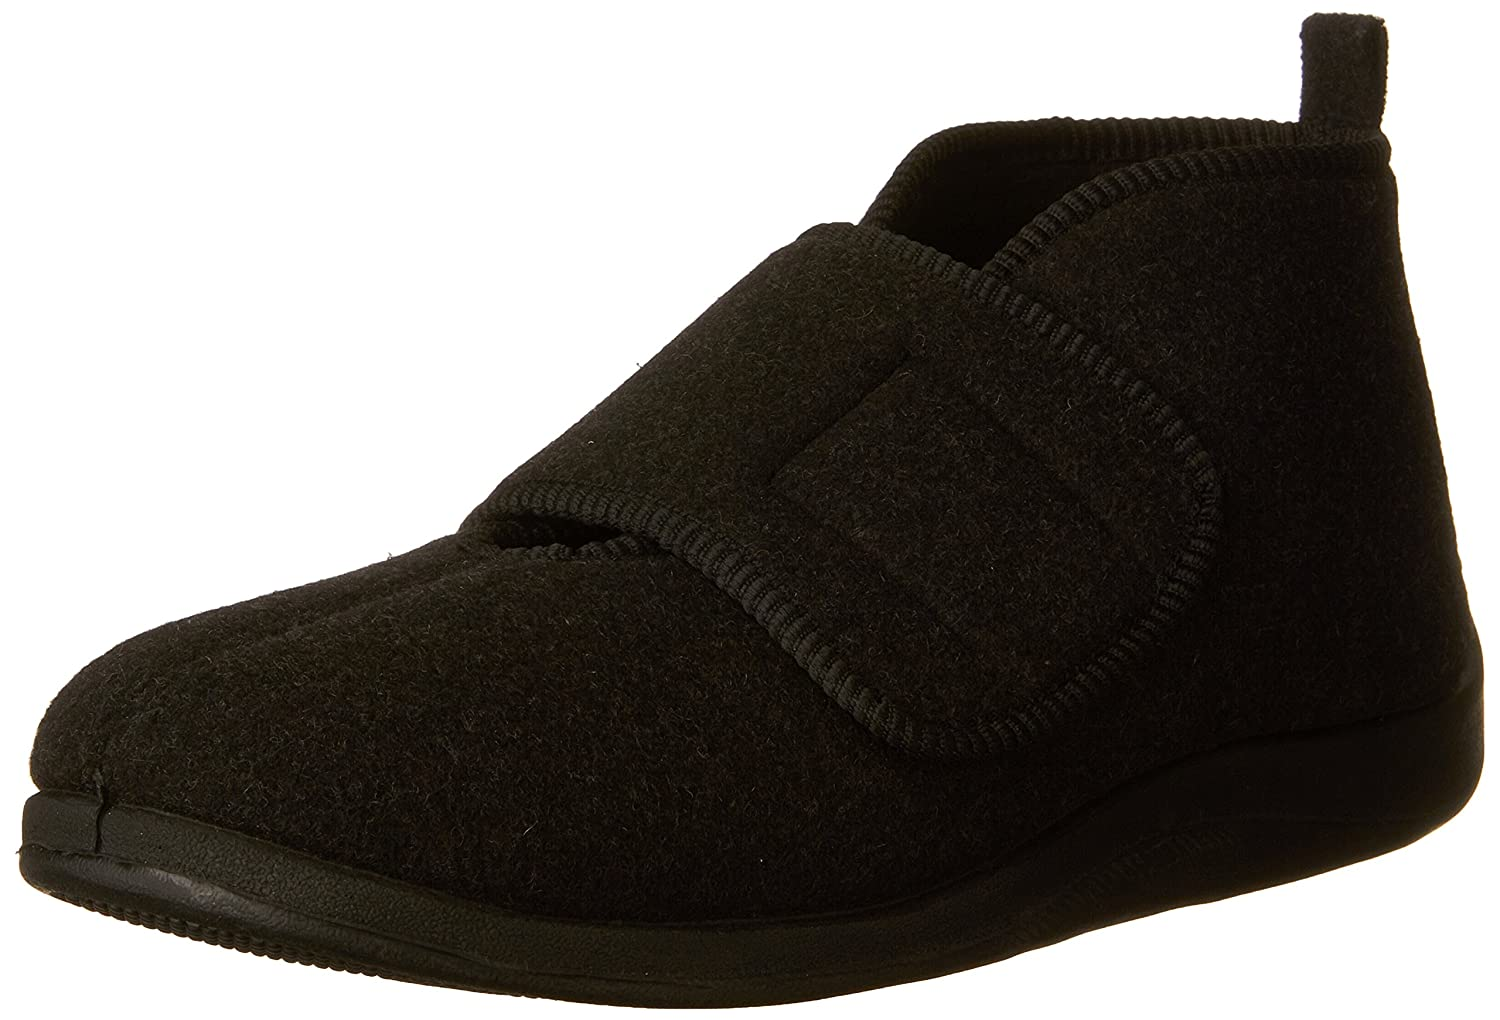 Foamtreads Men's Comfort Slippers COMM-16TR-CC-WB